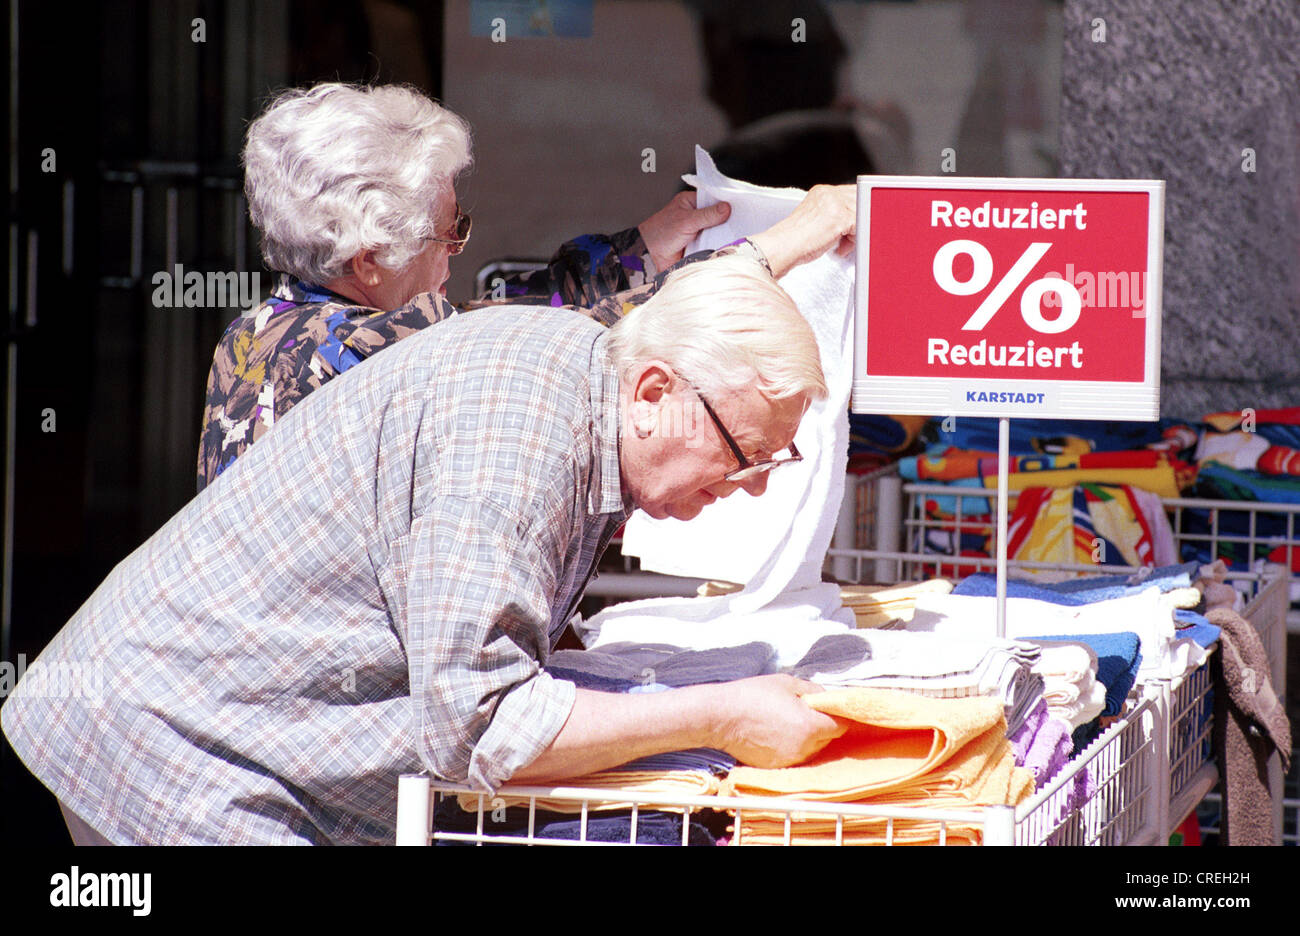 Couple considered reduced towels, Herne, Germany - Stock Image